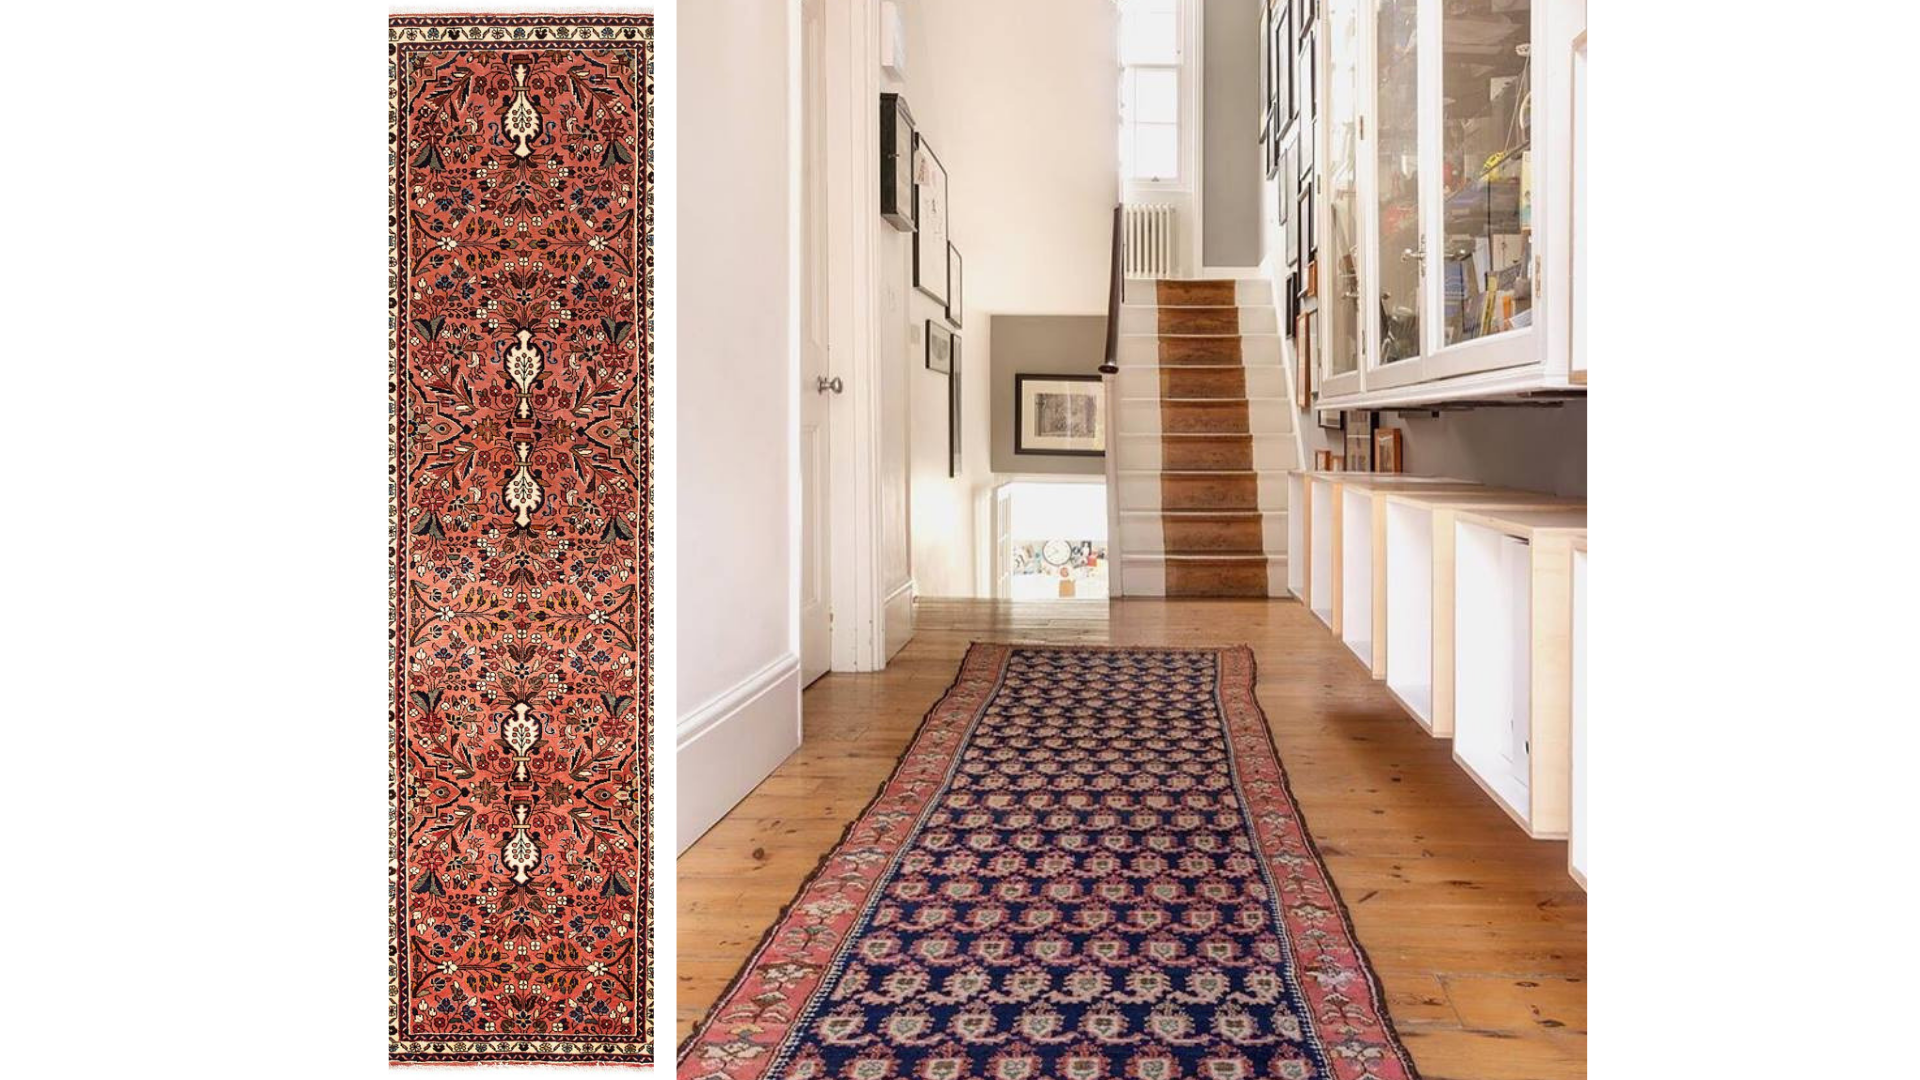 Rug Placement, interior design, design ideas, interior layout, rug collections, london rugs, persian rugs